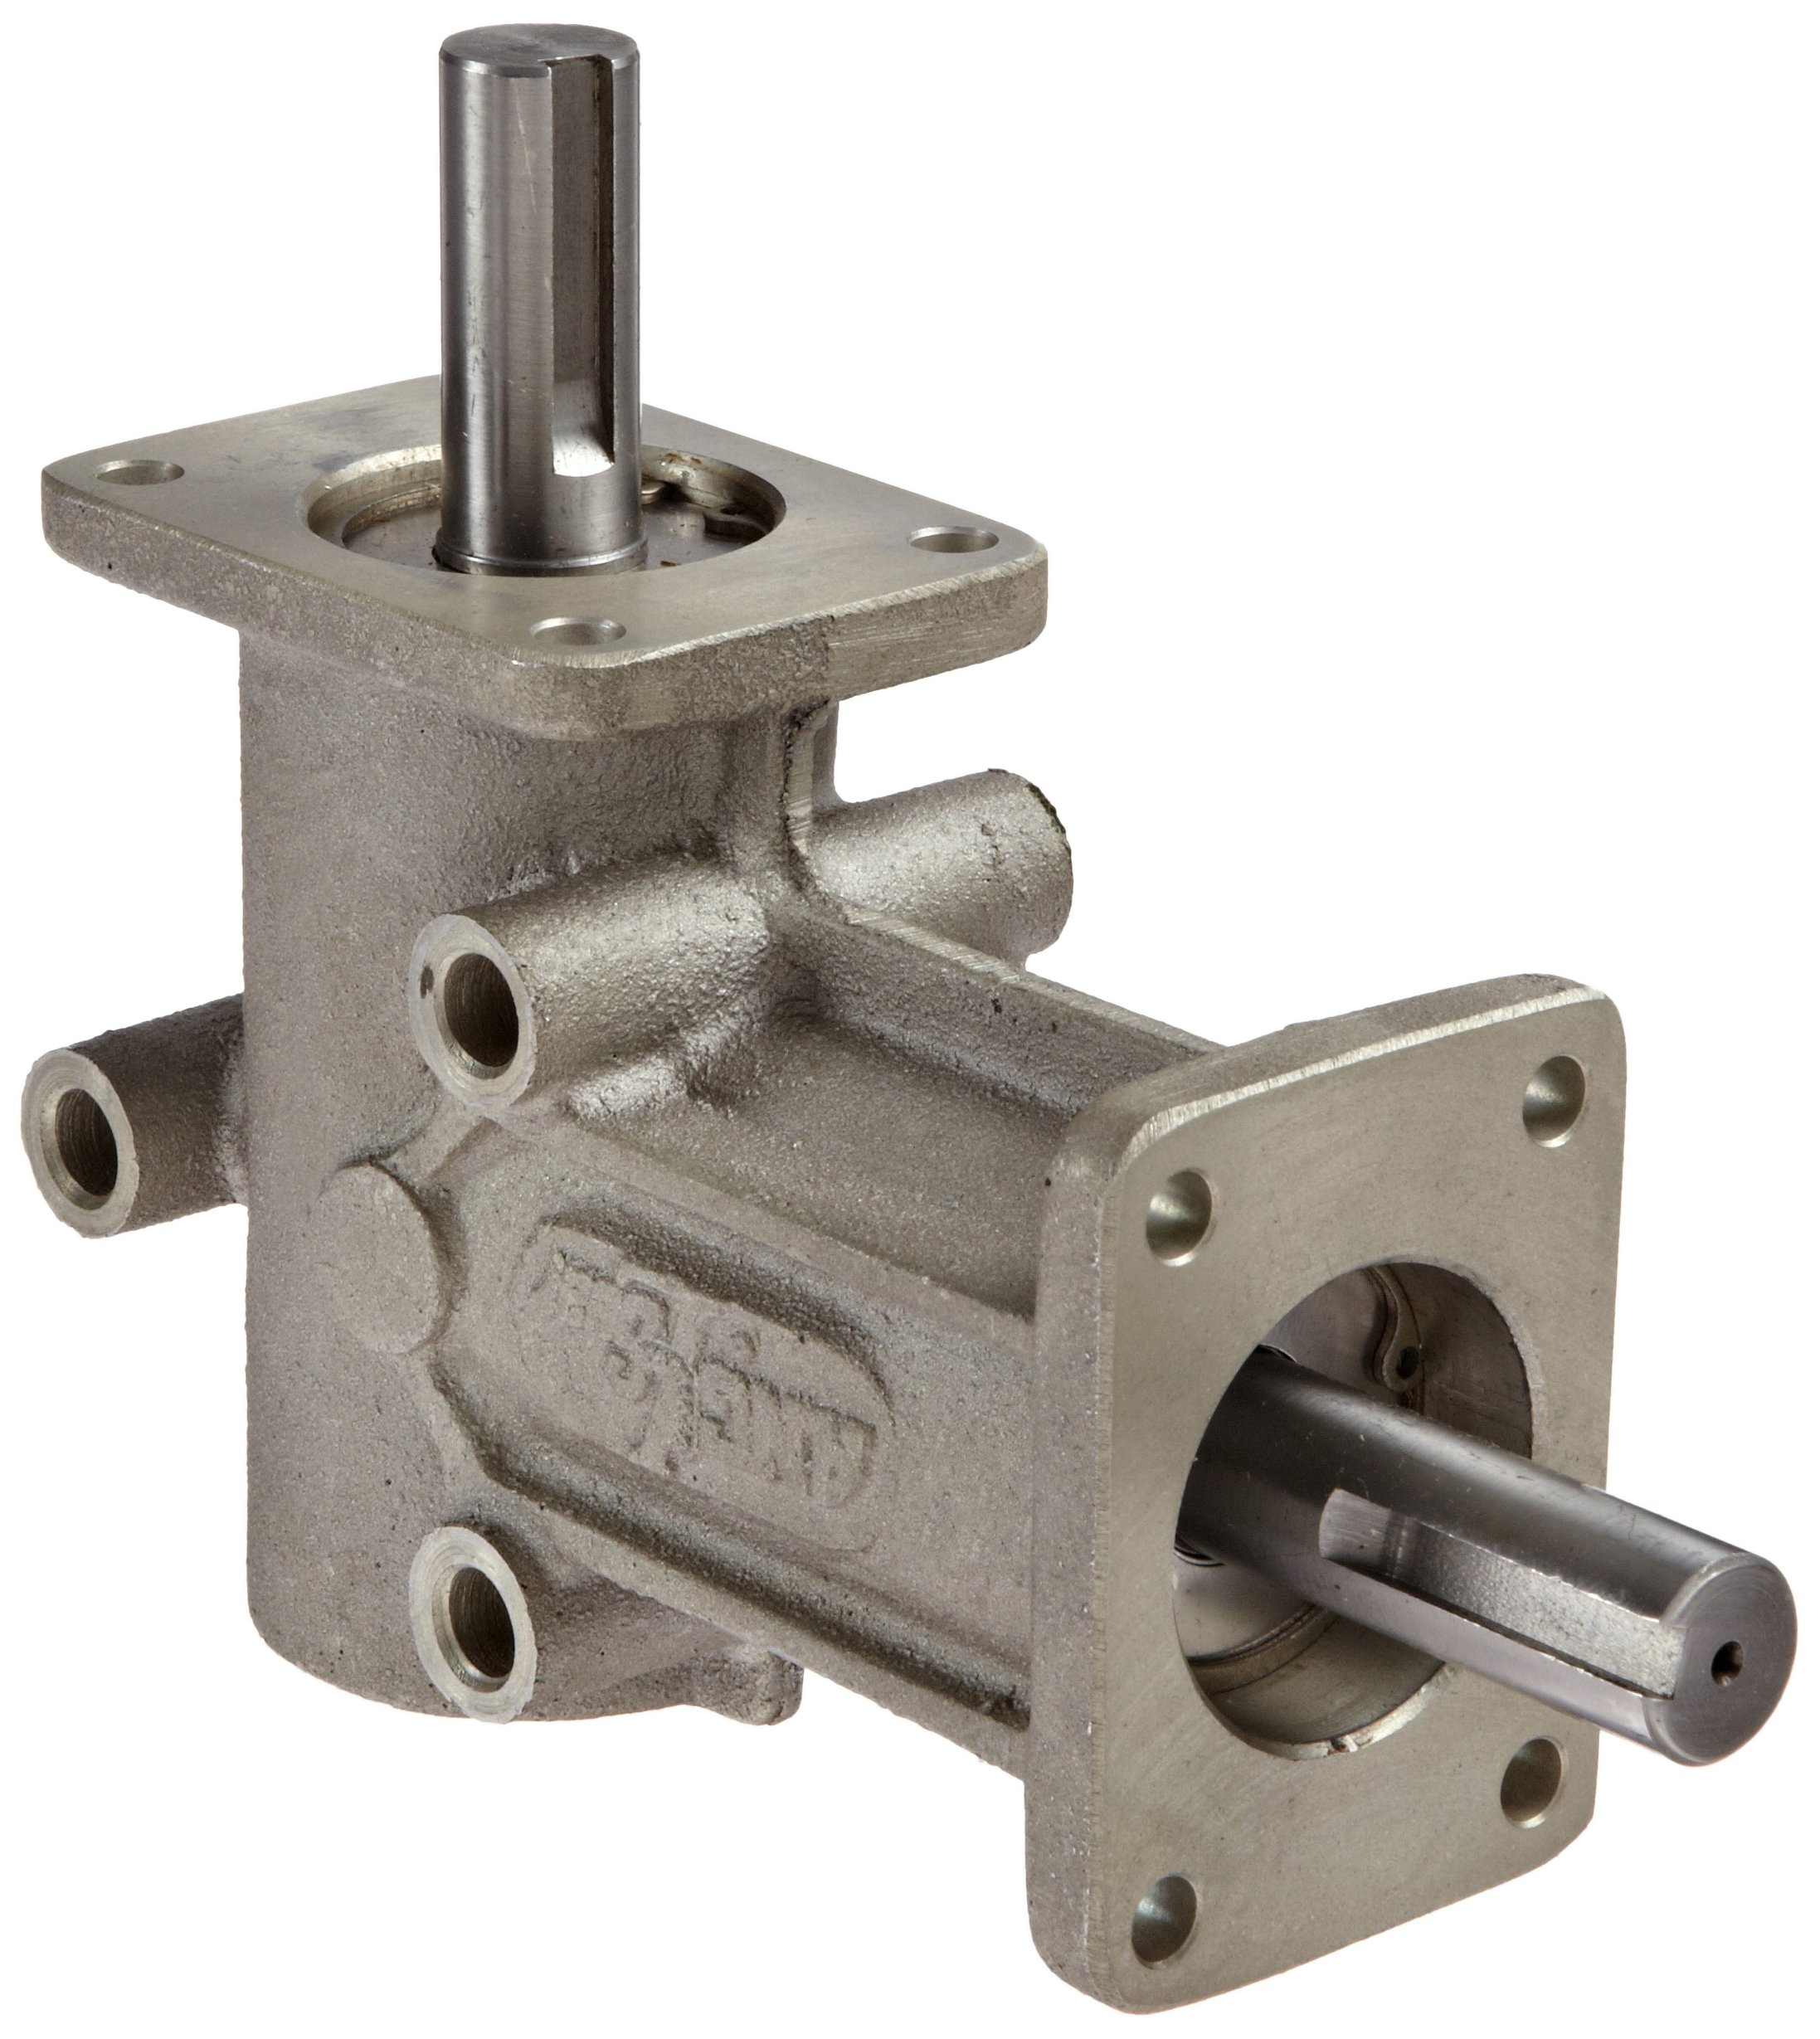 Andantex R3200-2M Anglgear Right Angle Bevel Gear Drive, Universal Mounting, Single Output Shaft, 2 Flanges, Metric, 15mm Shaft Diameter, 2:1 Ratio.32kW at 1750rpm by Andantex